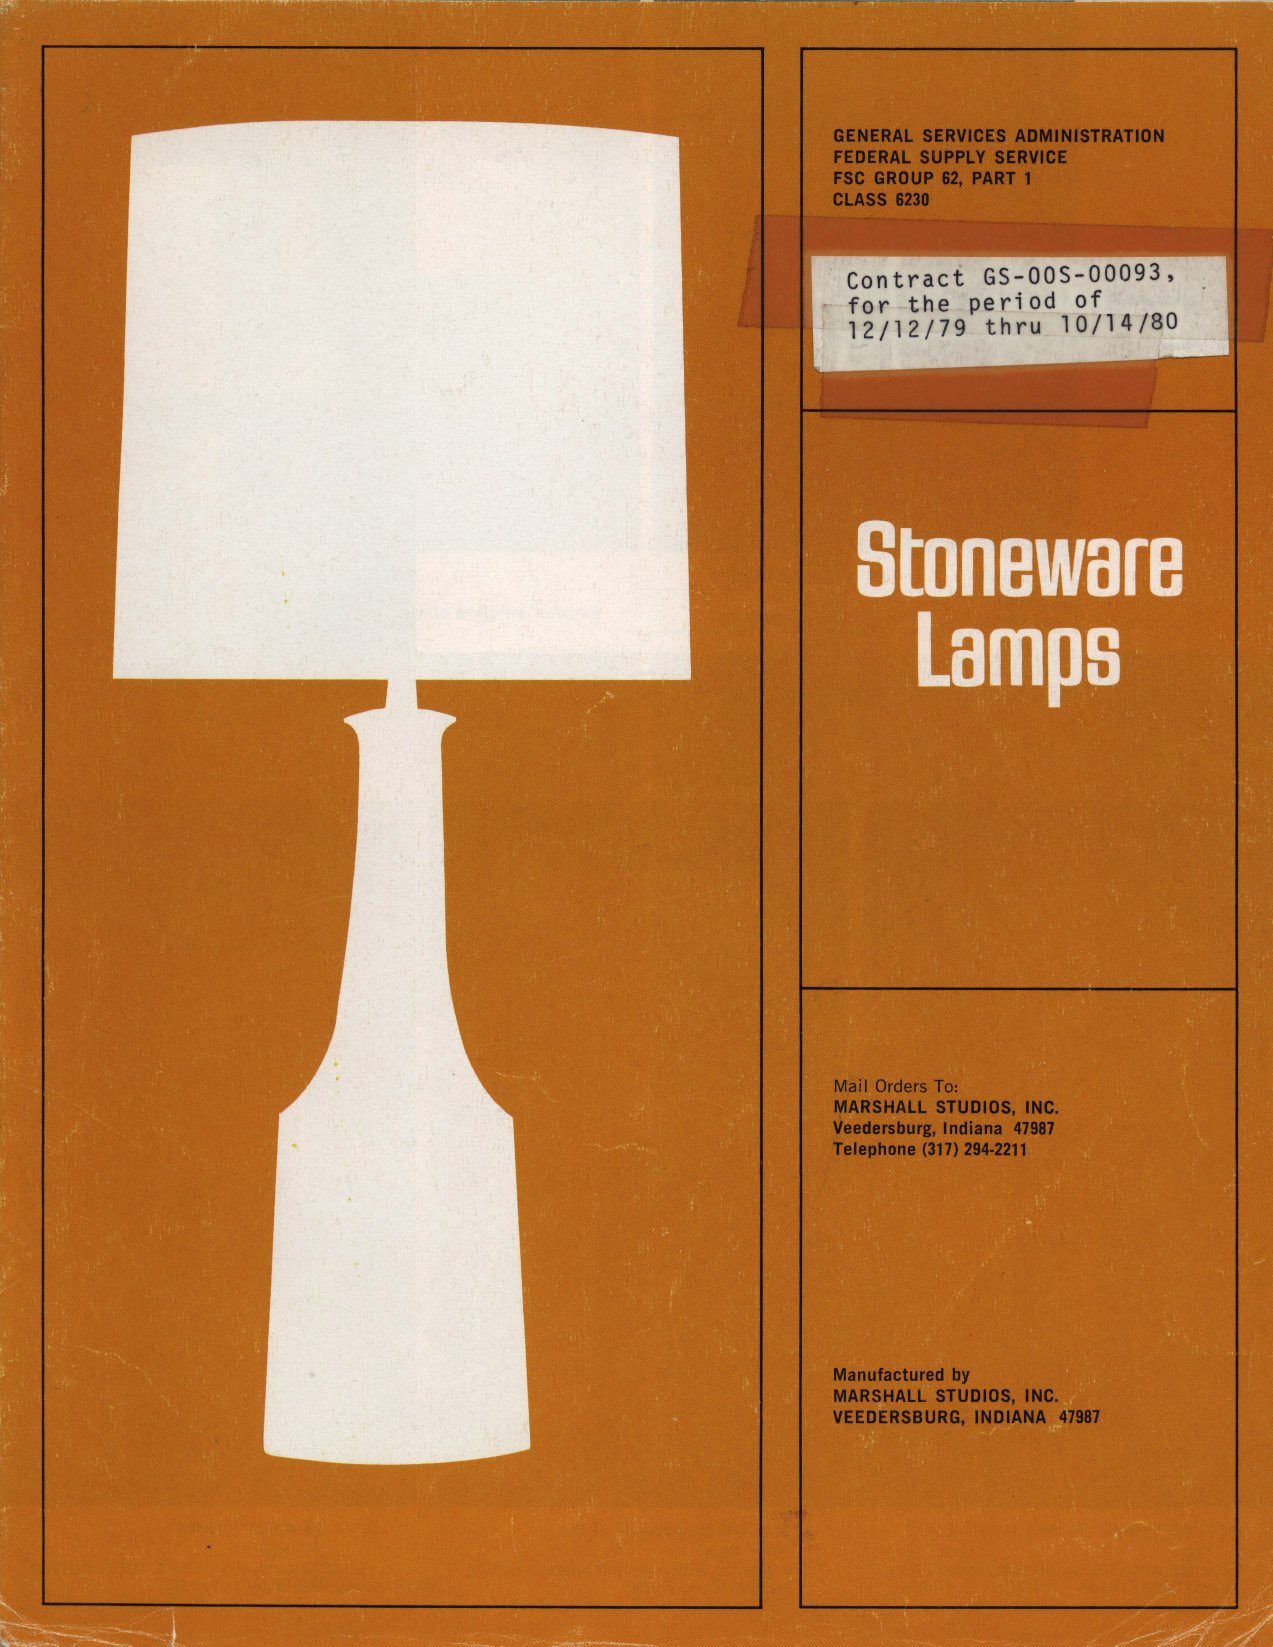 ms-cut-gsa-lamps1_1977.jpg